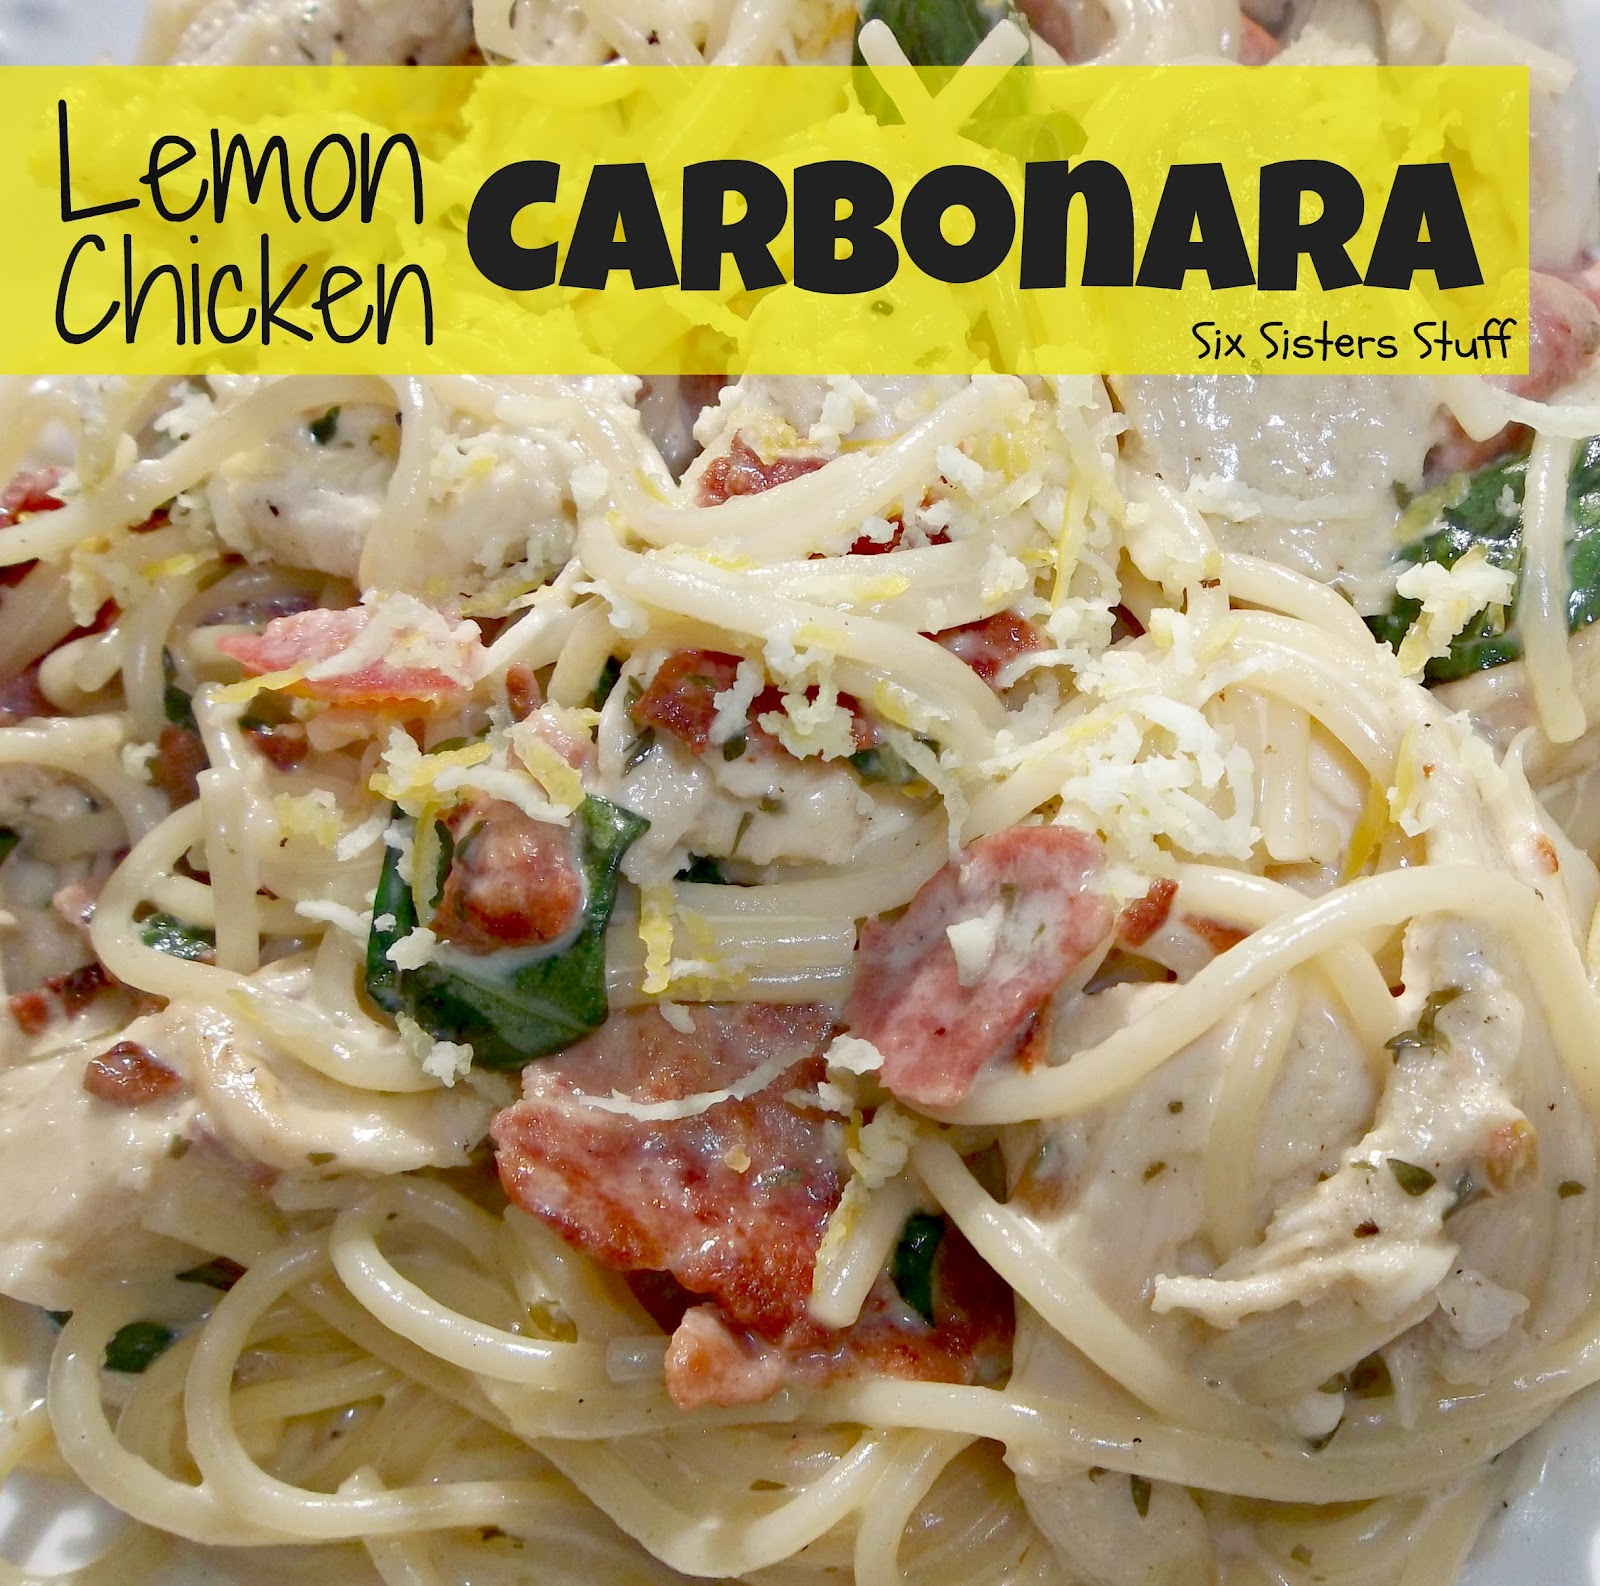 Lemon Chicken Carbonara | Six Sisters' Stuff